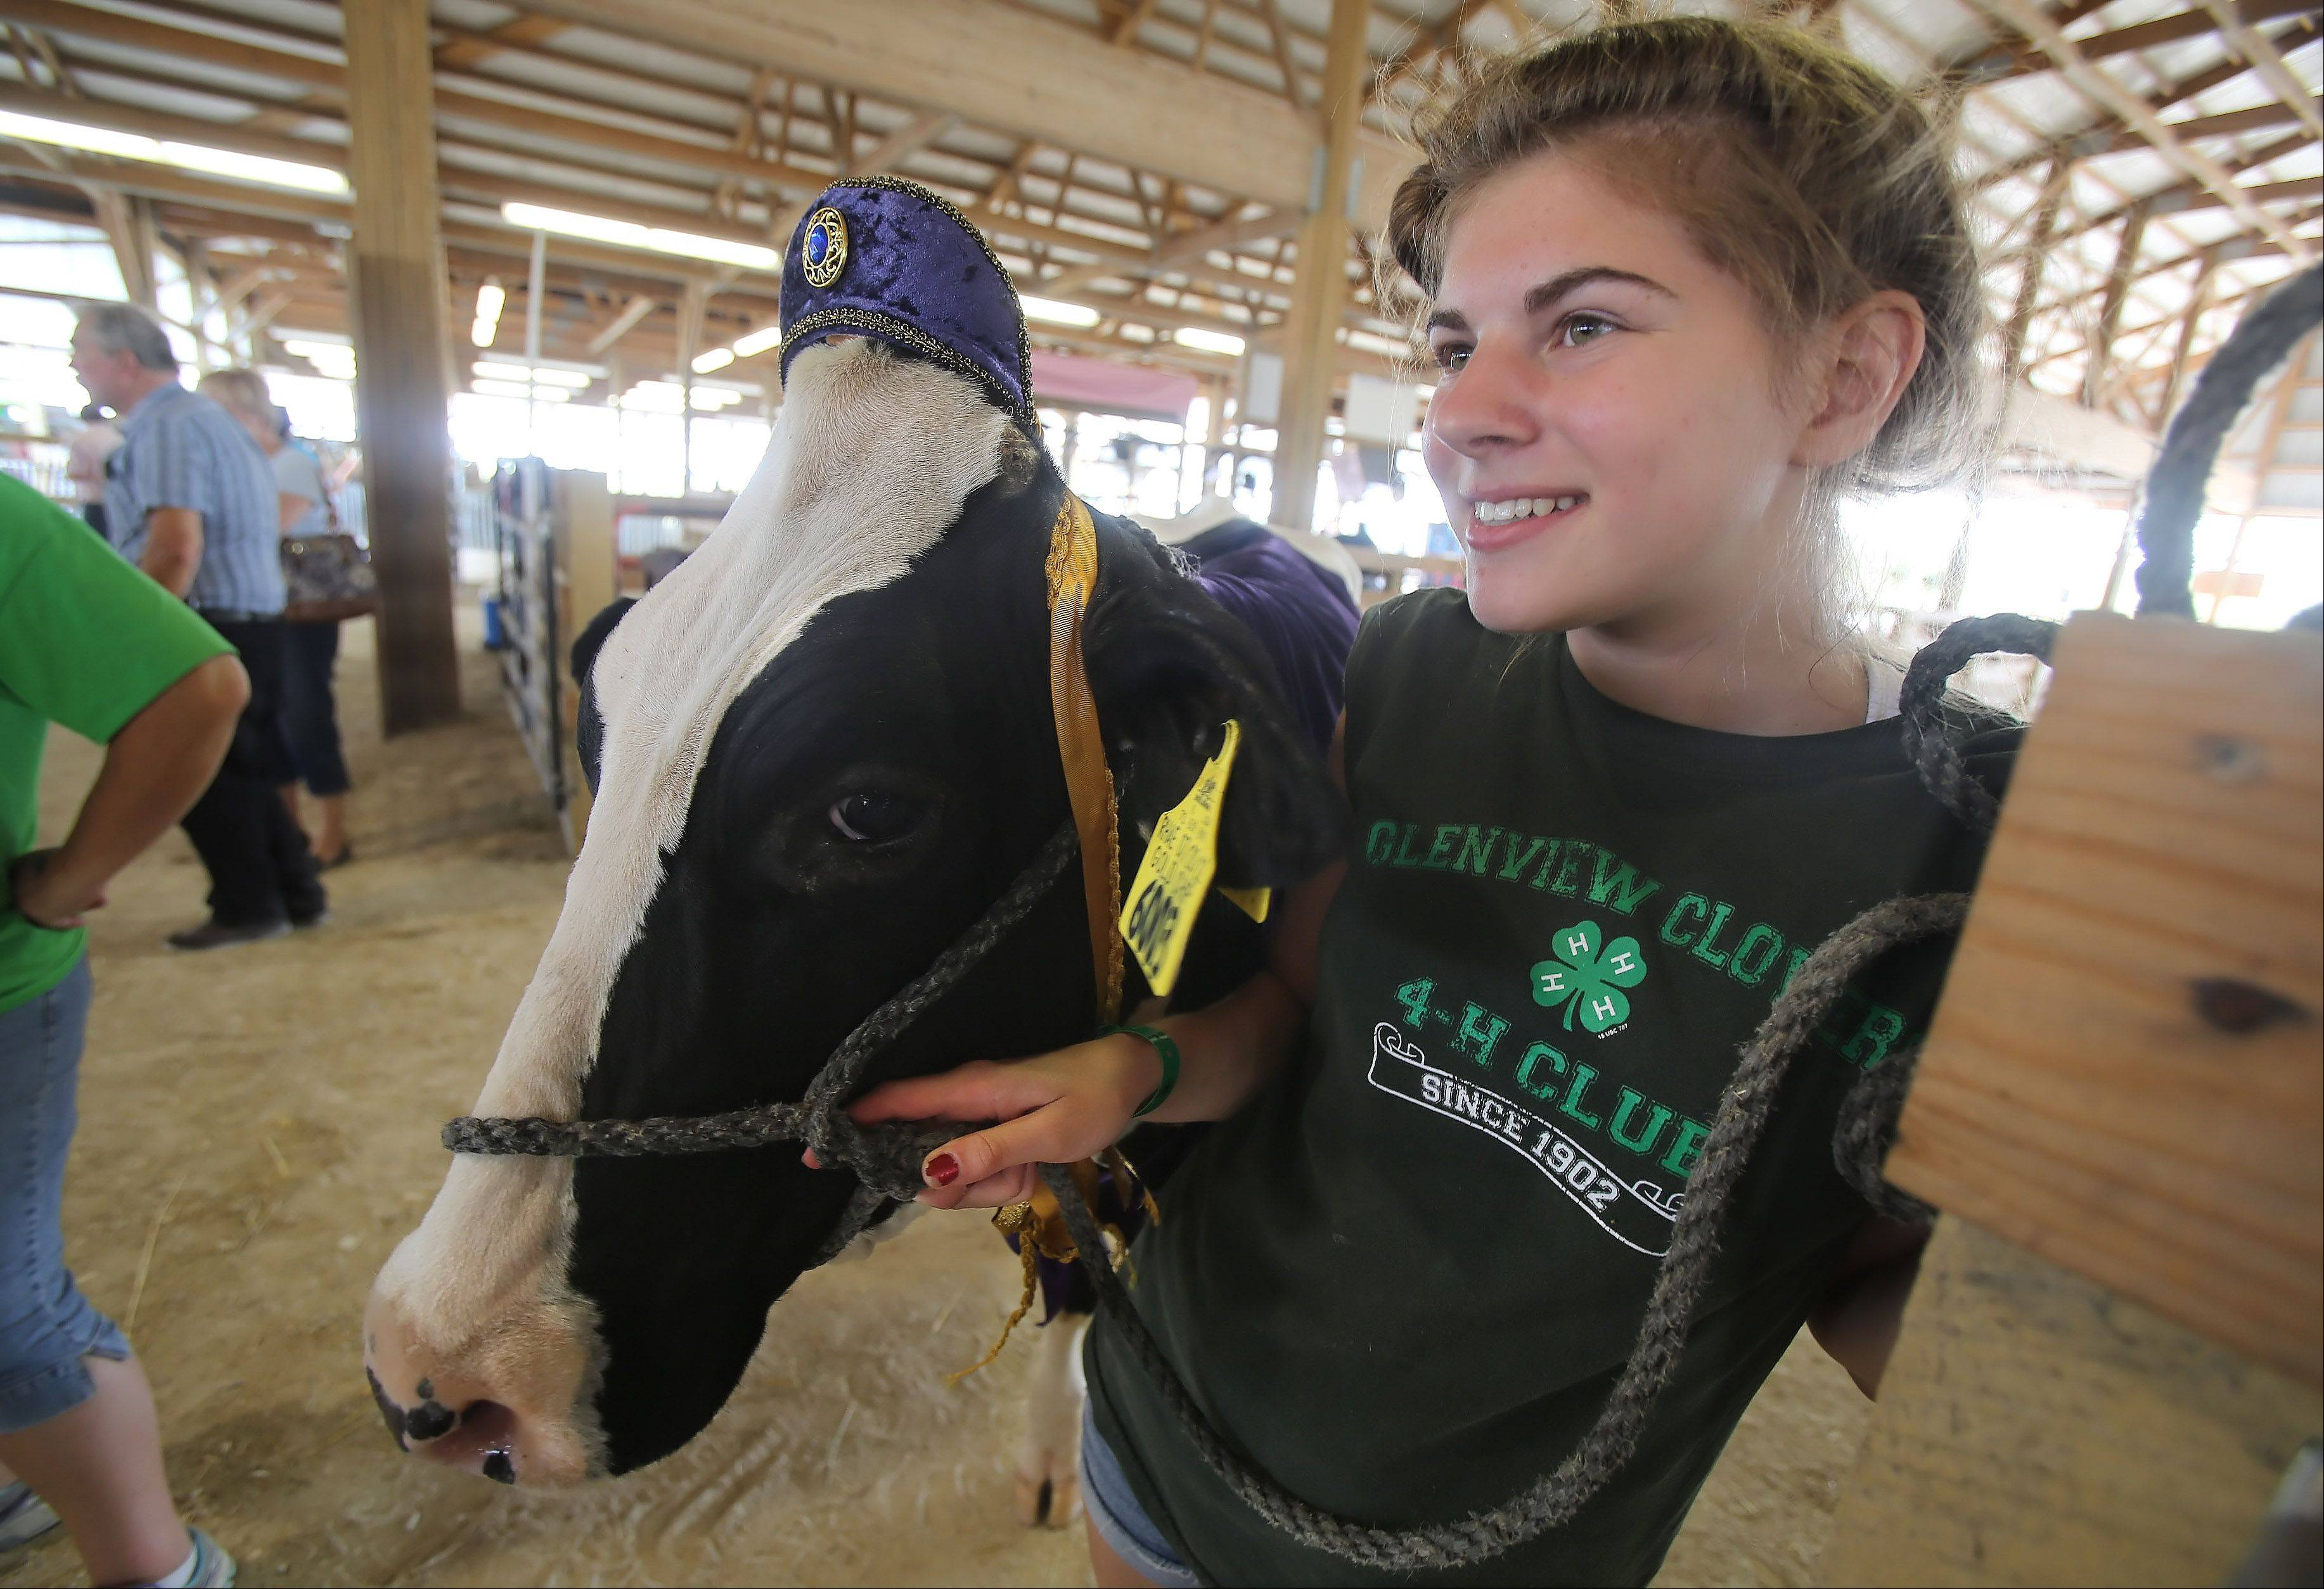 Anna Madsen, 15, of Glenview stands with her cow dressed as the Royal Baby as they wait Livestock Costume Contest during the Lake County Fair Thursday at the Lake County Fairgrounds in Grayslake.